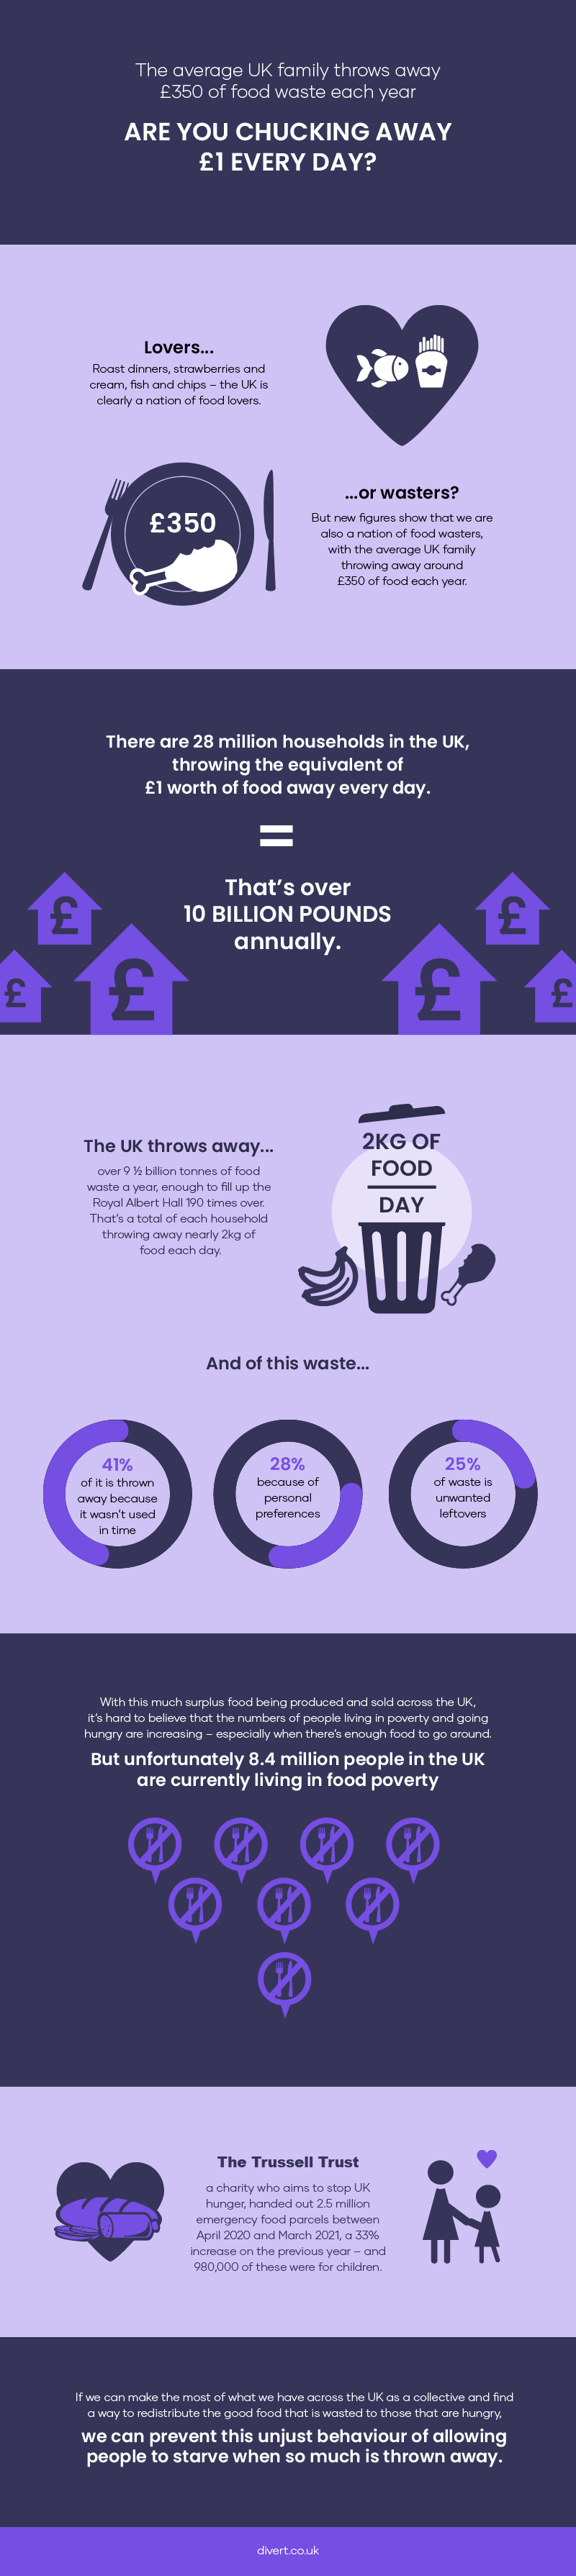 Food waste facts and stats